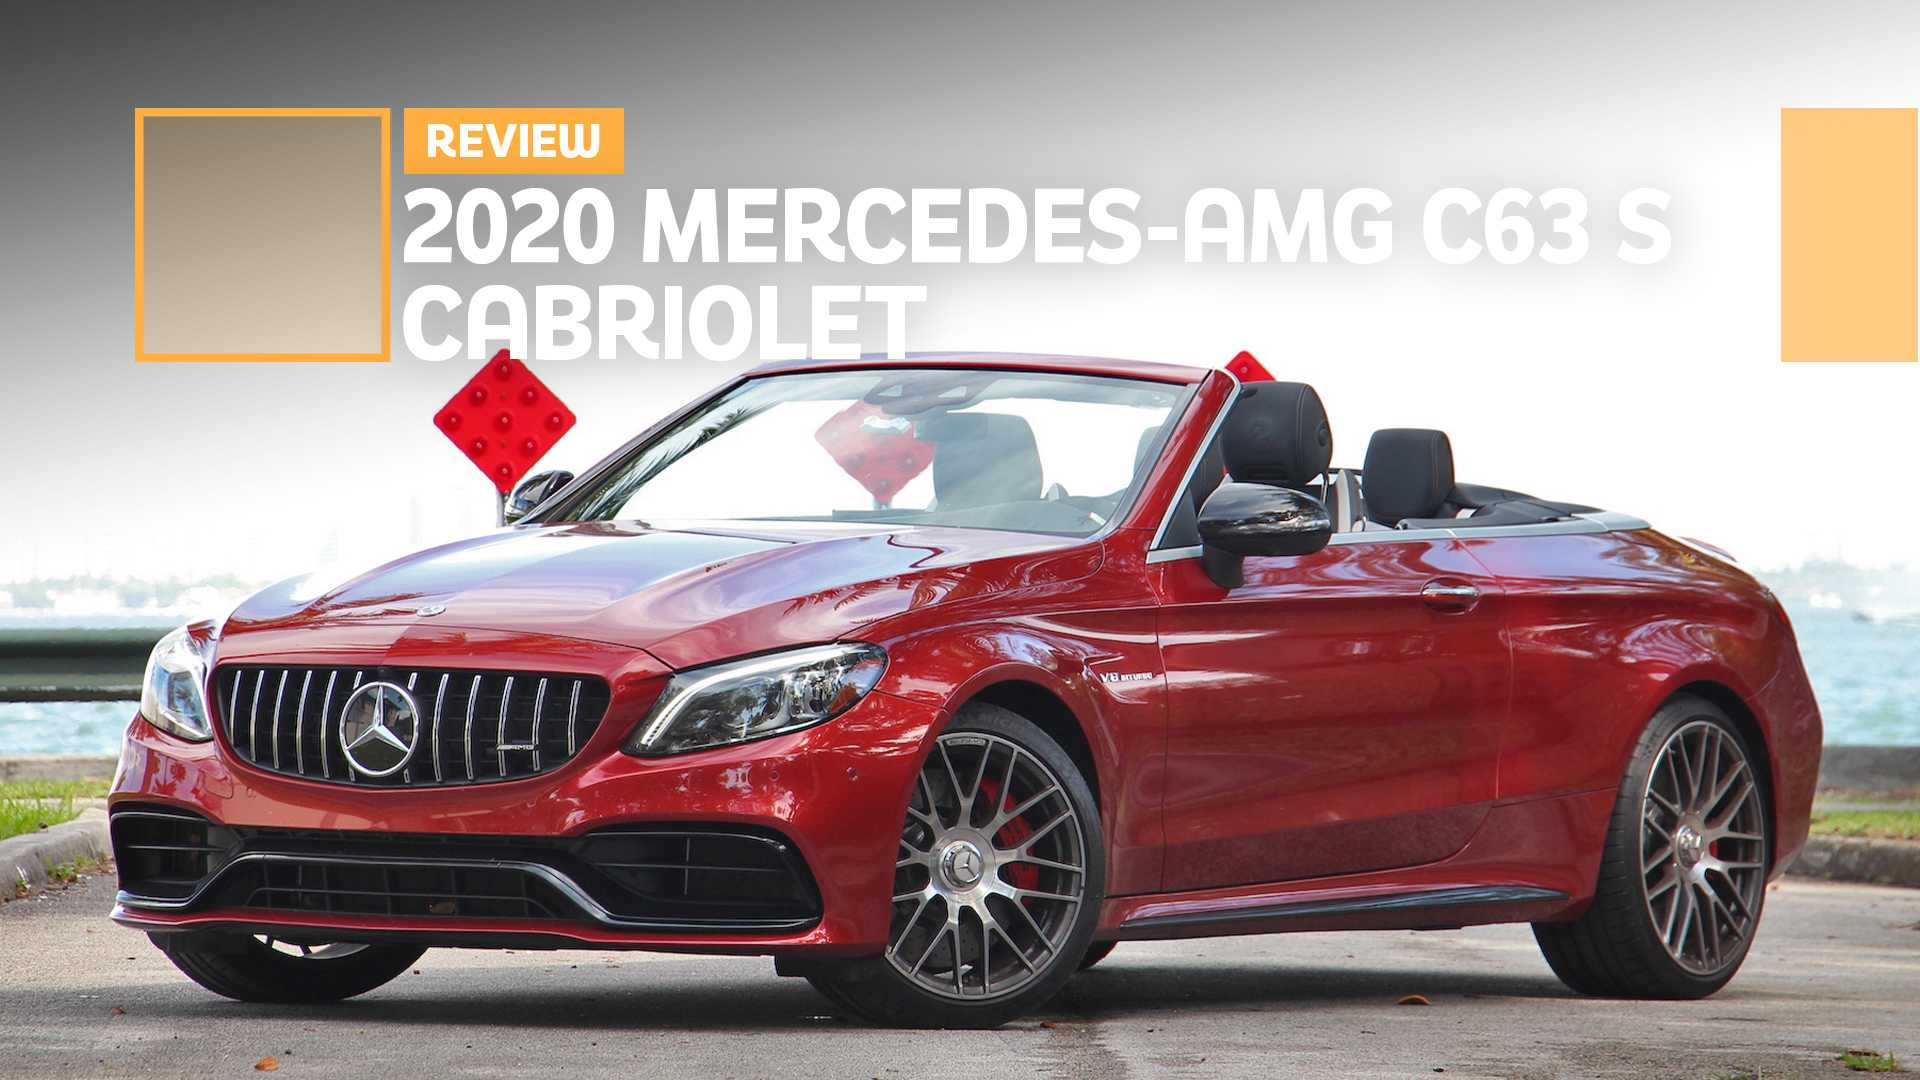 2020 Mercedes Amg C63 S Cabriolet Review The Fast And The Frivolous